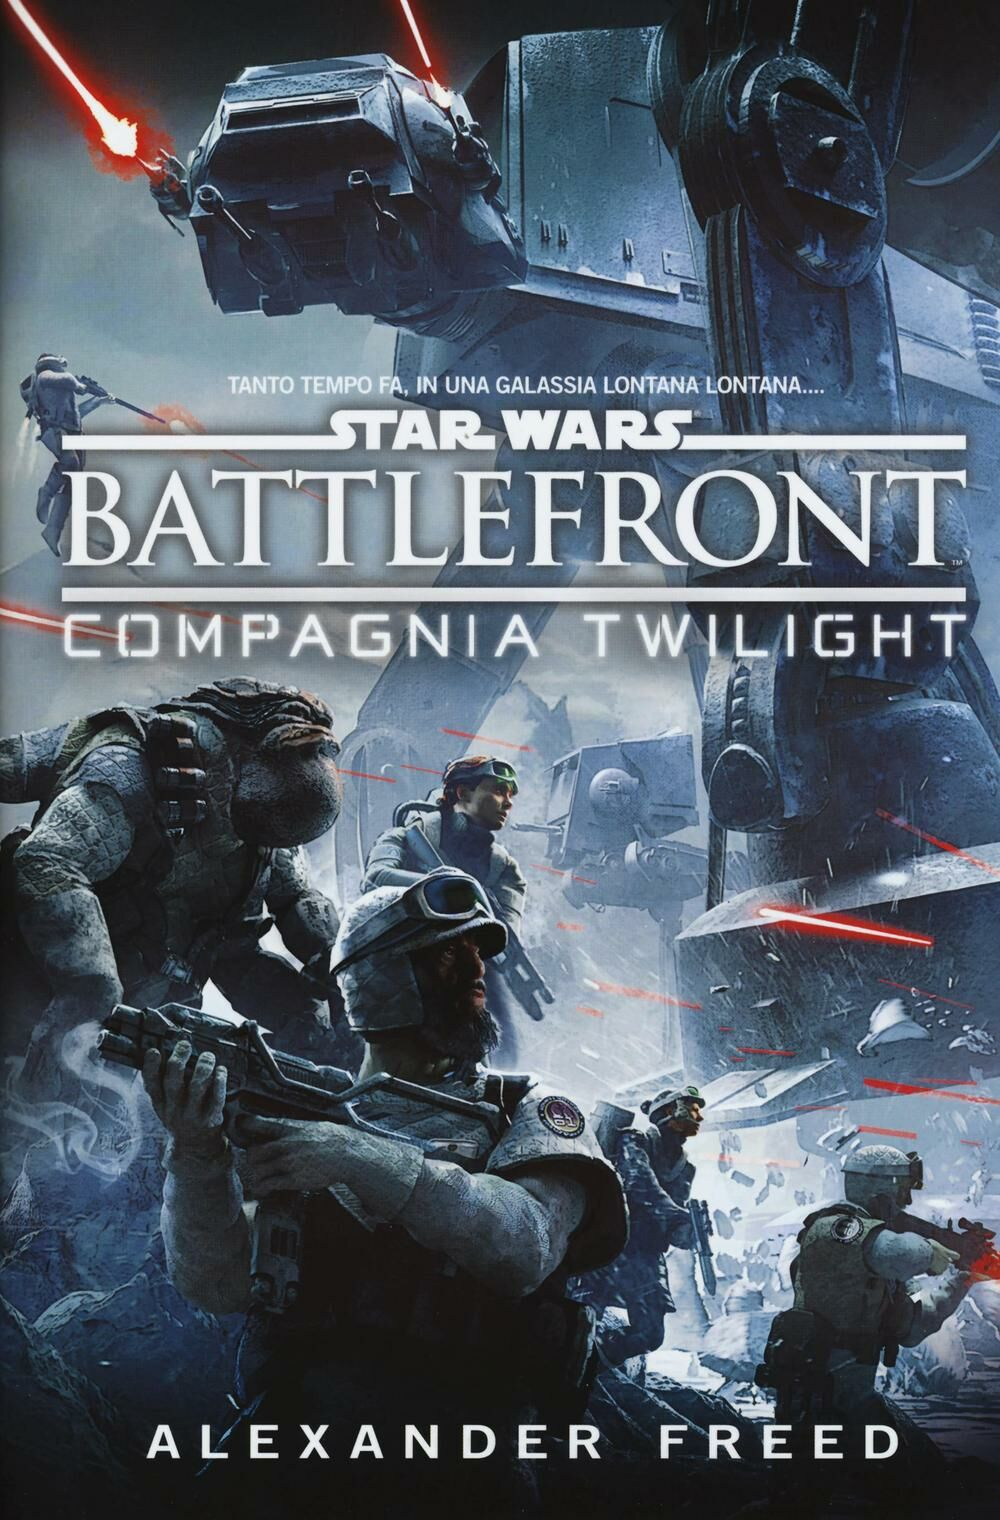 Battlefront. Compagnia Twilight. Star Wars